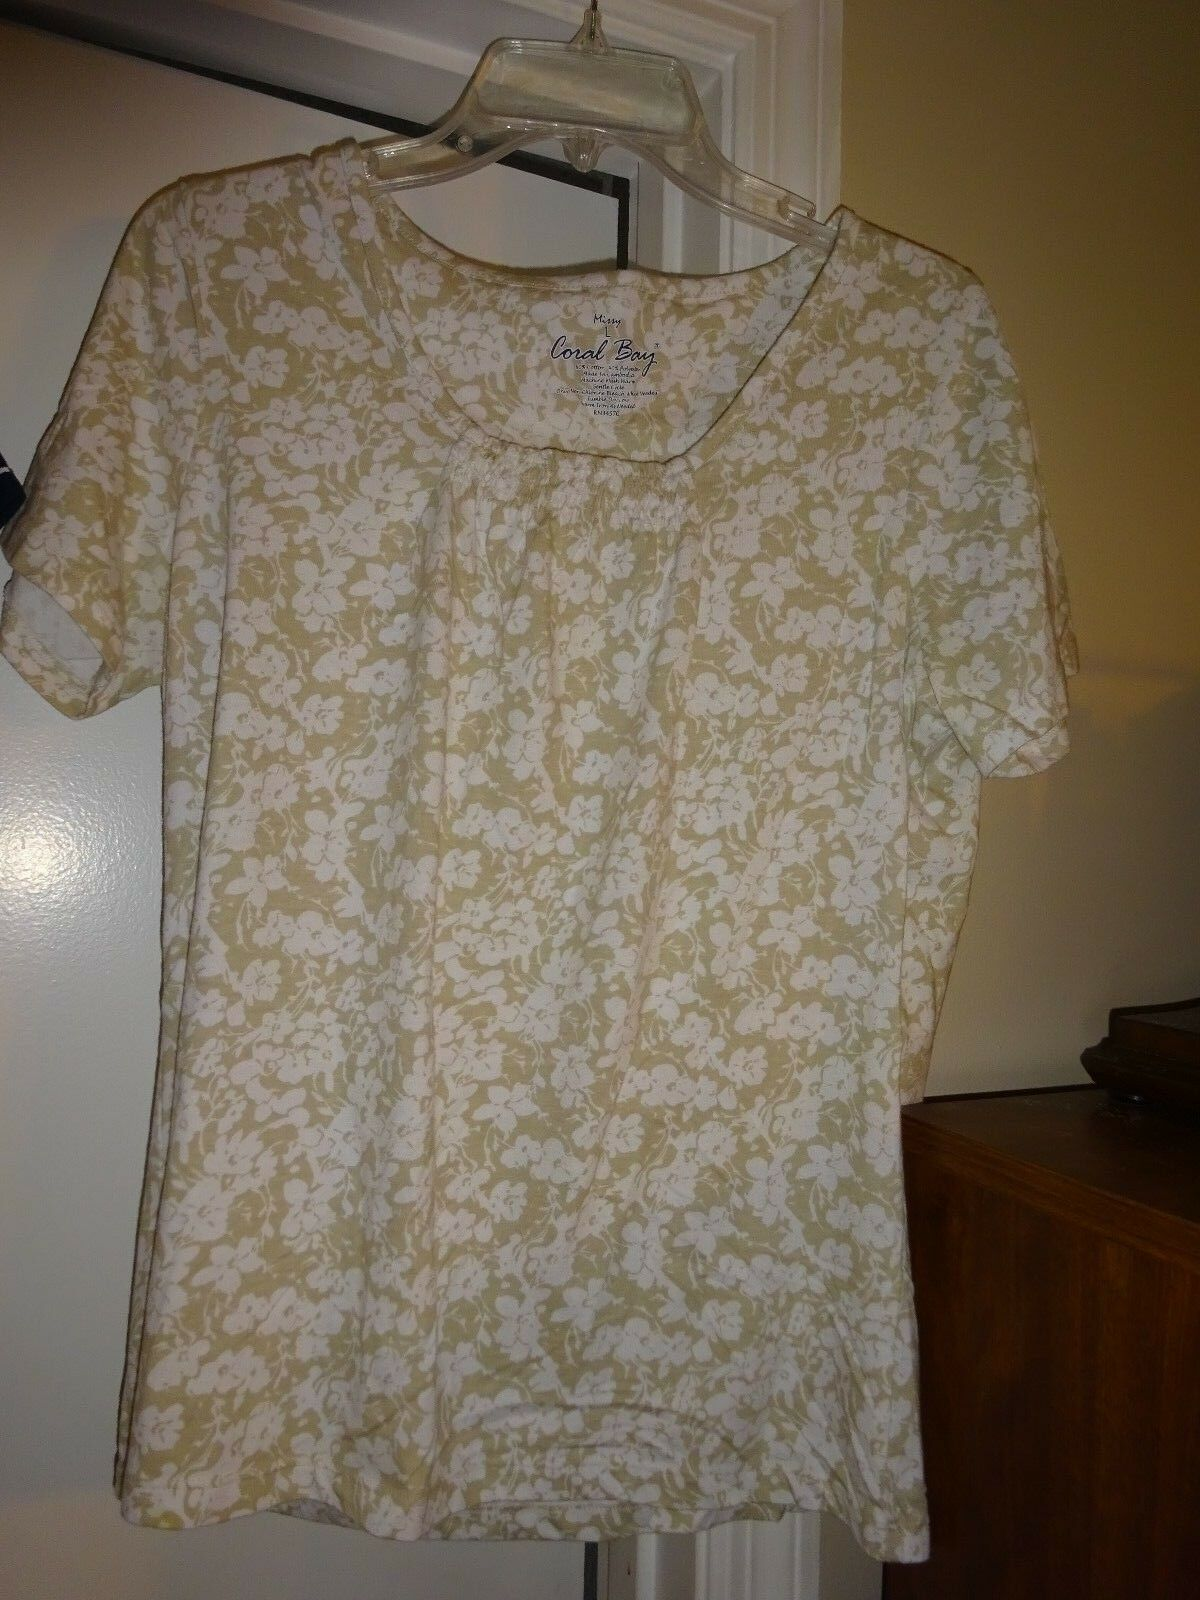 CORAL BAY Ladies Größe Large Tan & Weiß Shrot Sleeve Top Casual Cotton Poly NEW